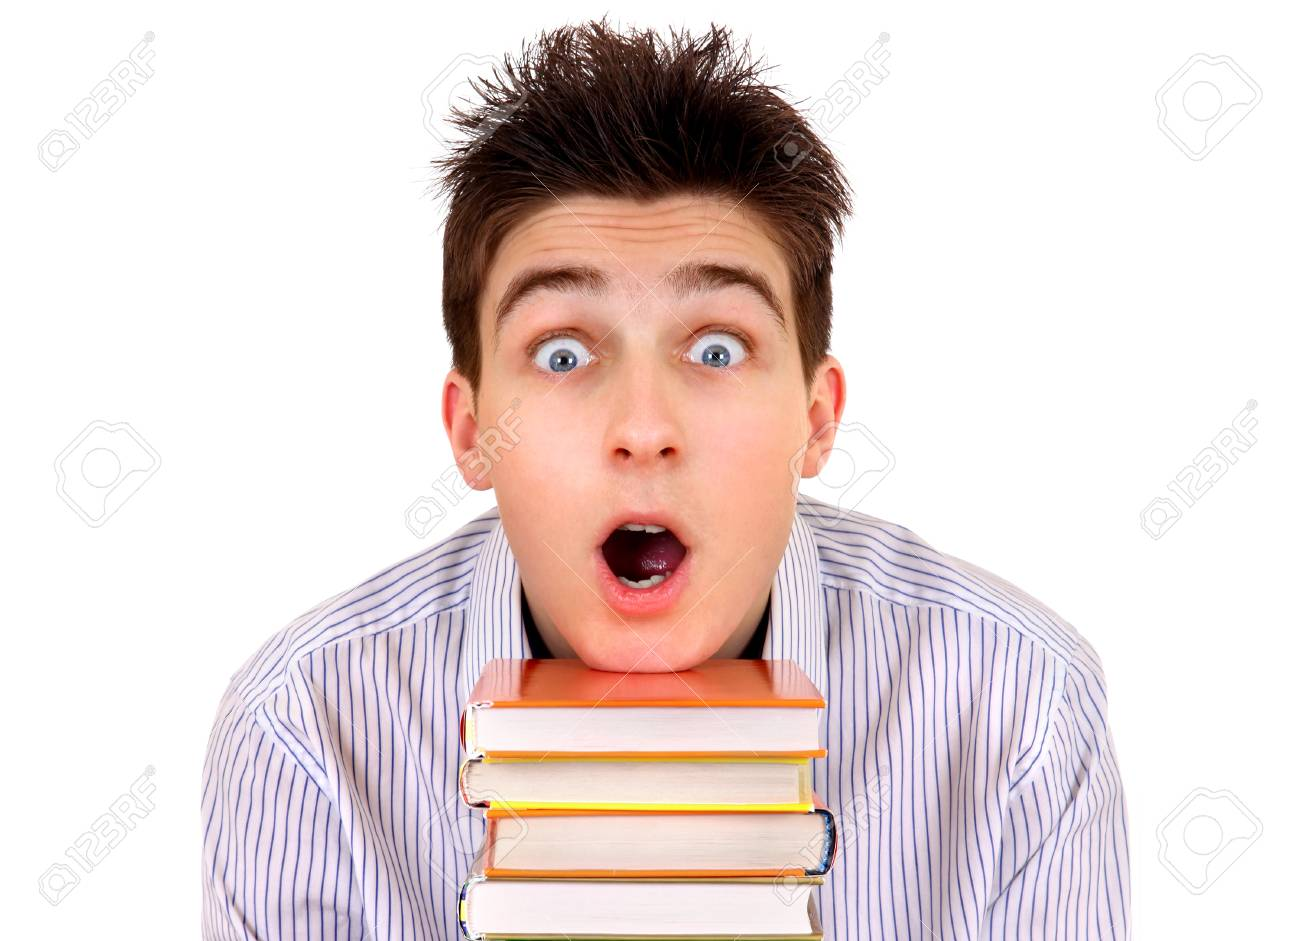 Shocked Student With A Books Isolated On The White Background 1300x941